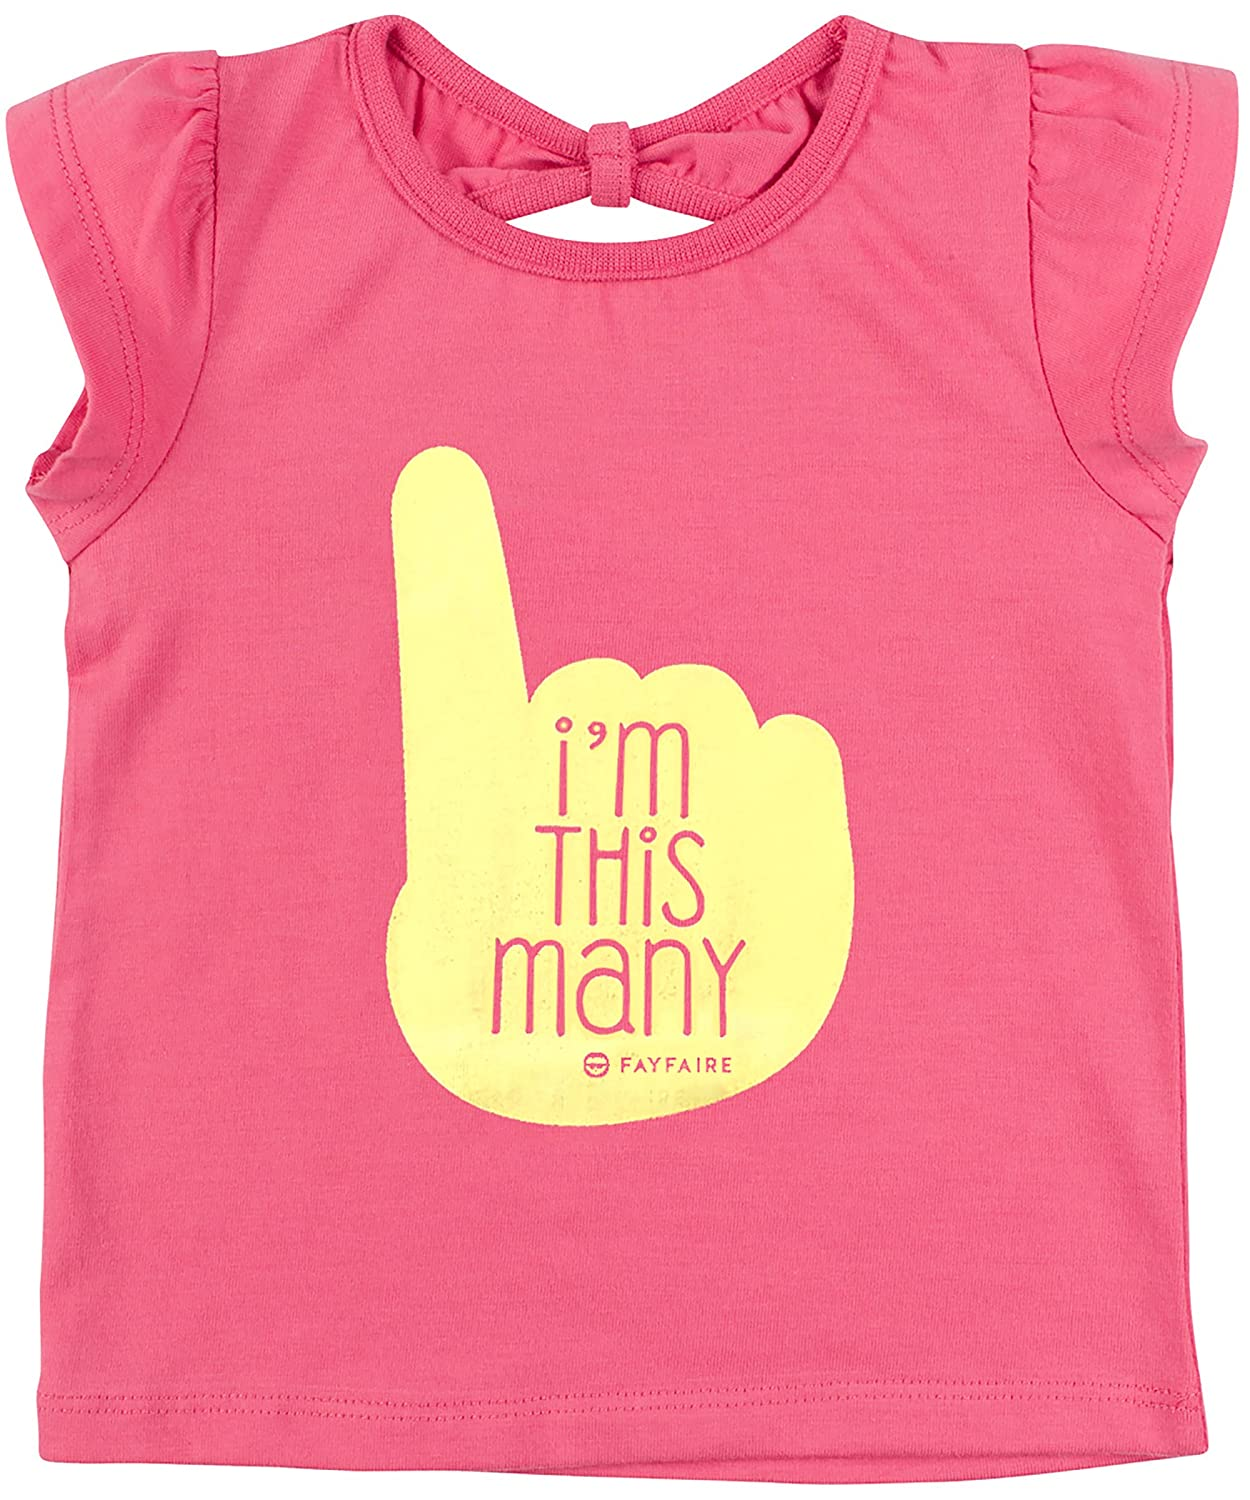 First Birthday Shirt by Fayfaire Boutique 1st Birthday Girl Im This Many 12M-18M